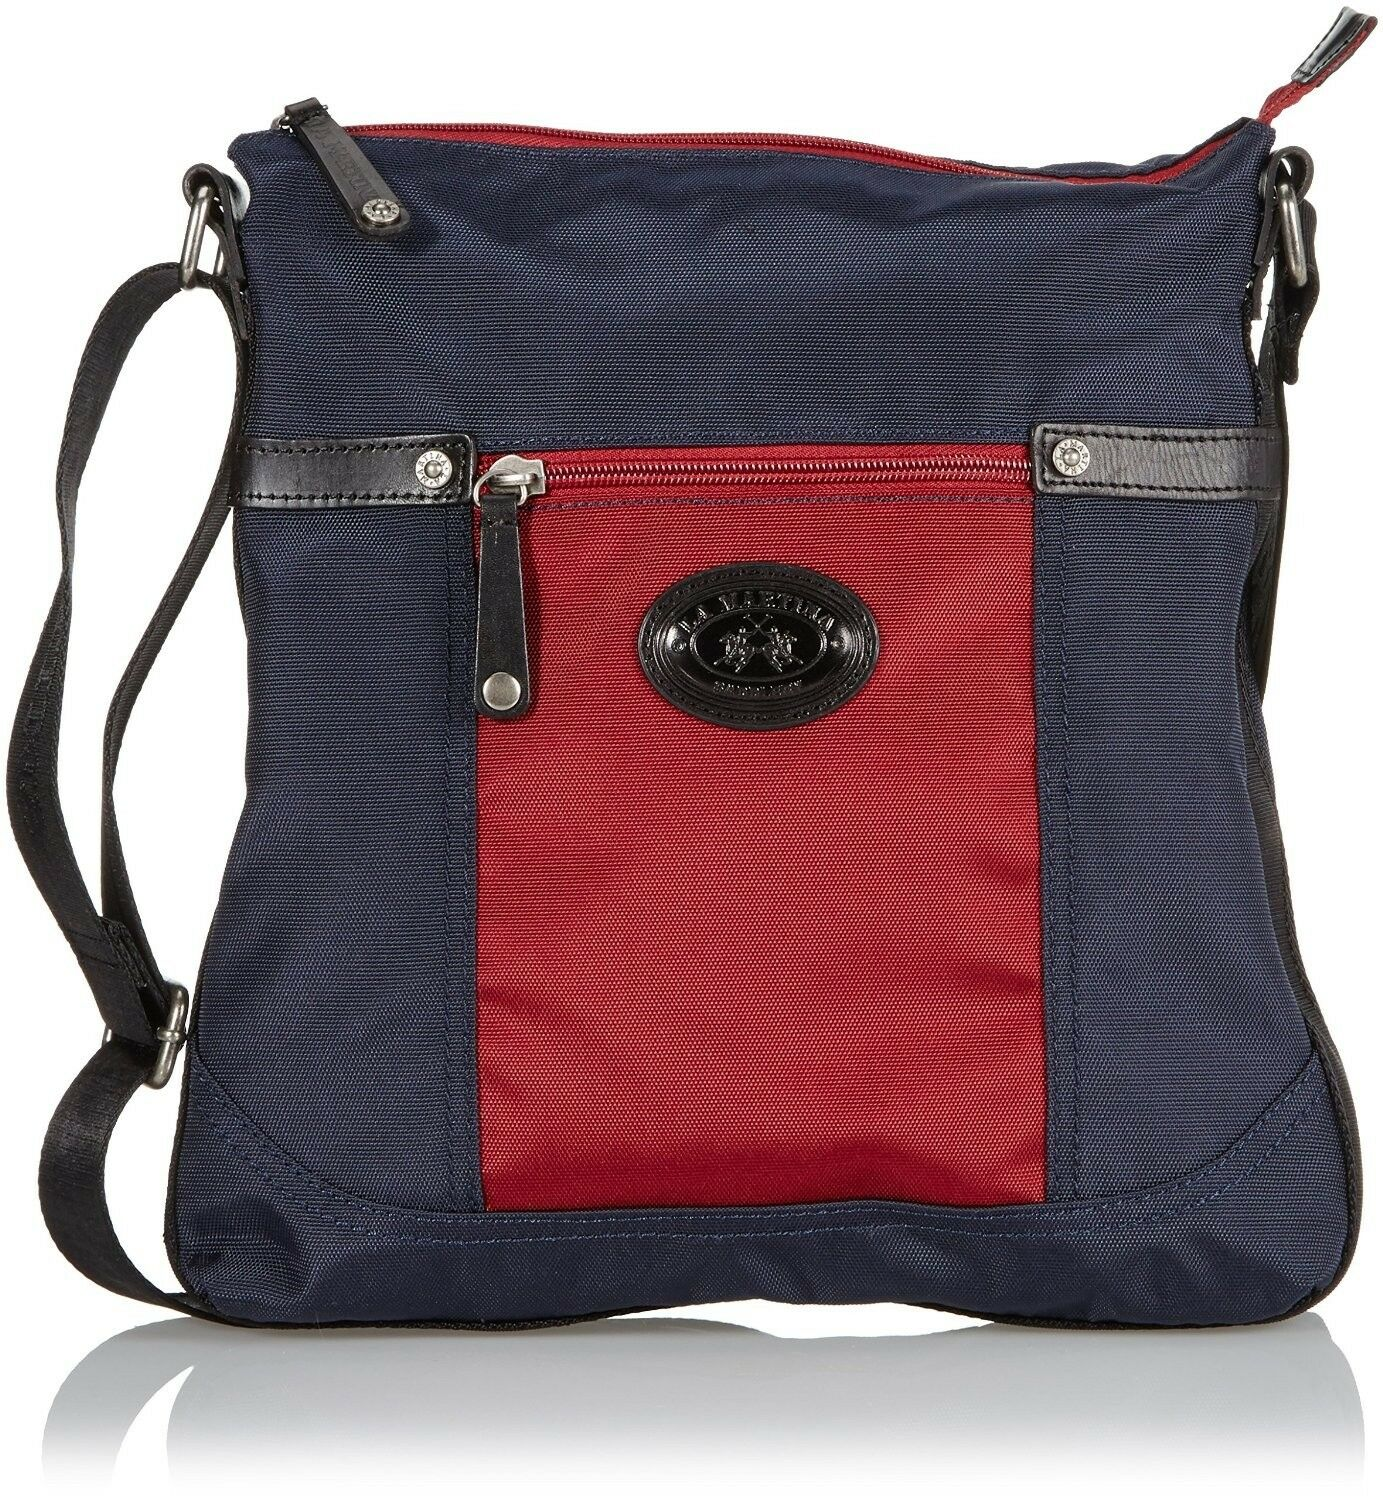 Messenger Bag shoulder strap La Martina Man Woman Men New Riding bluee